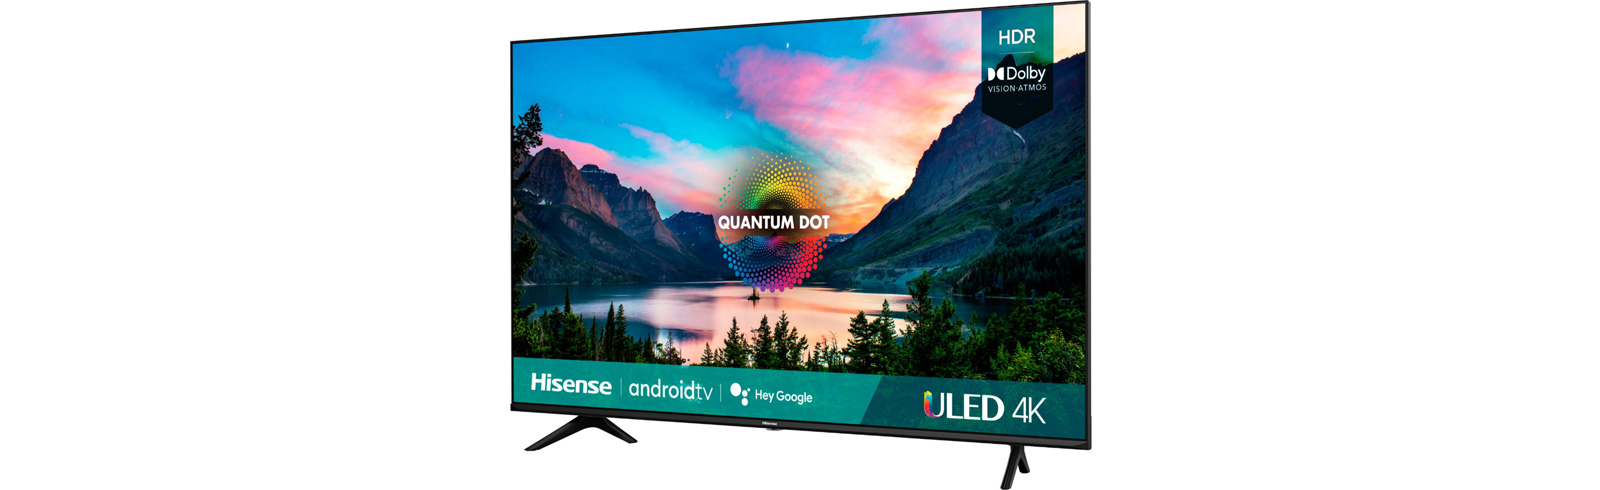 2021 Hisense U6G / U68G 4K ULED TVs for the USA - specifications and features